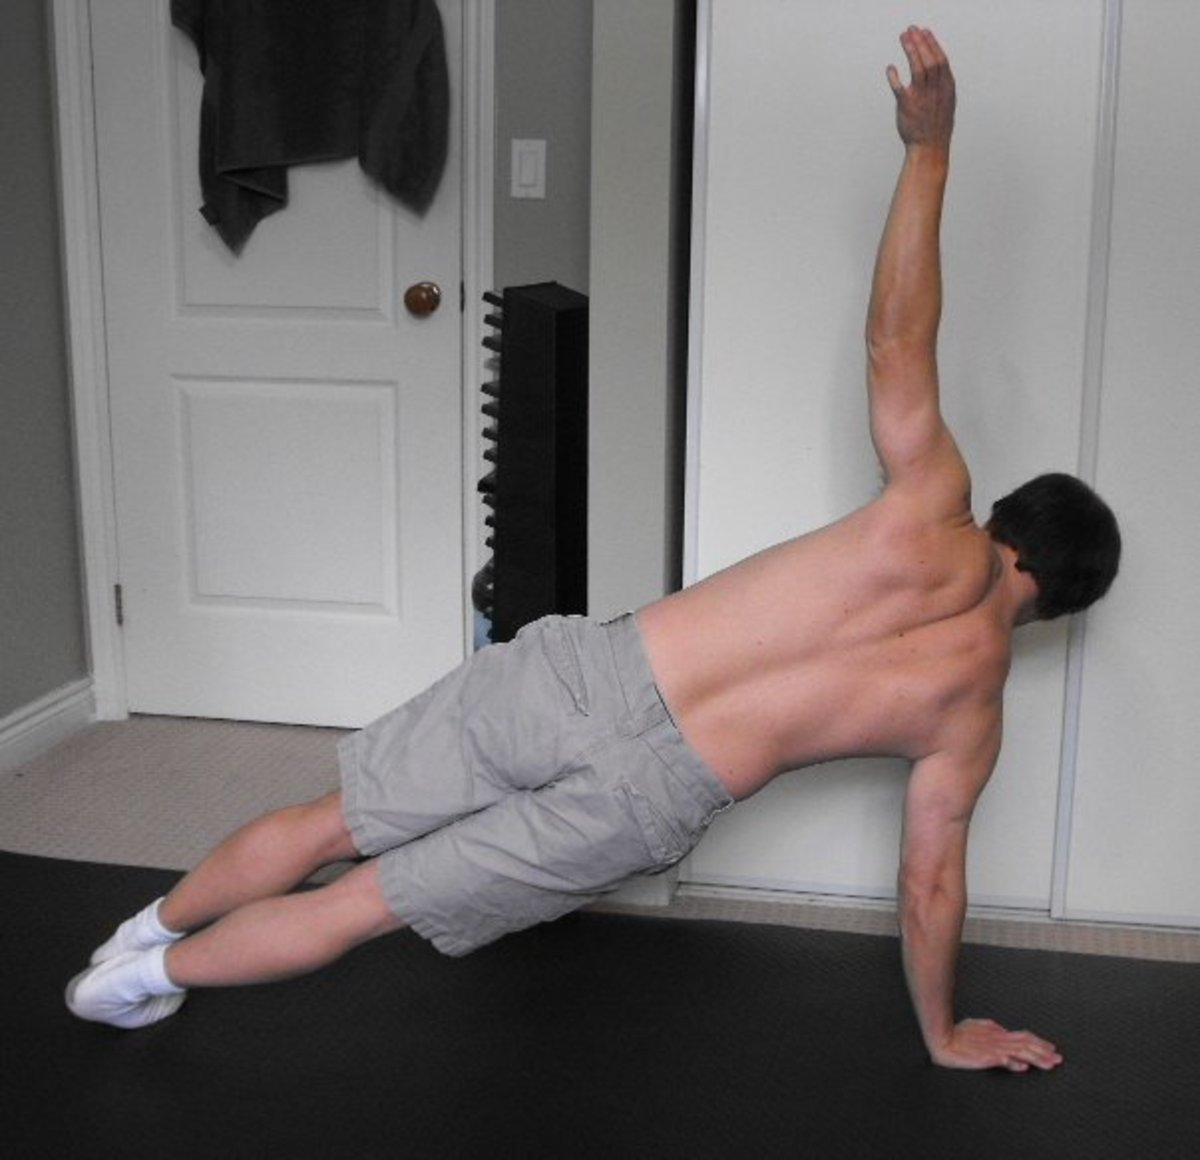 Quick Workout Ideas: One Minute Exercises to Build Muscle at